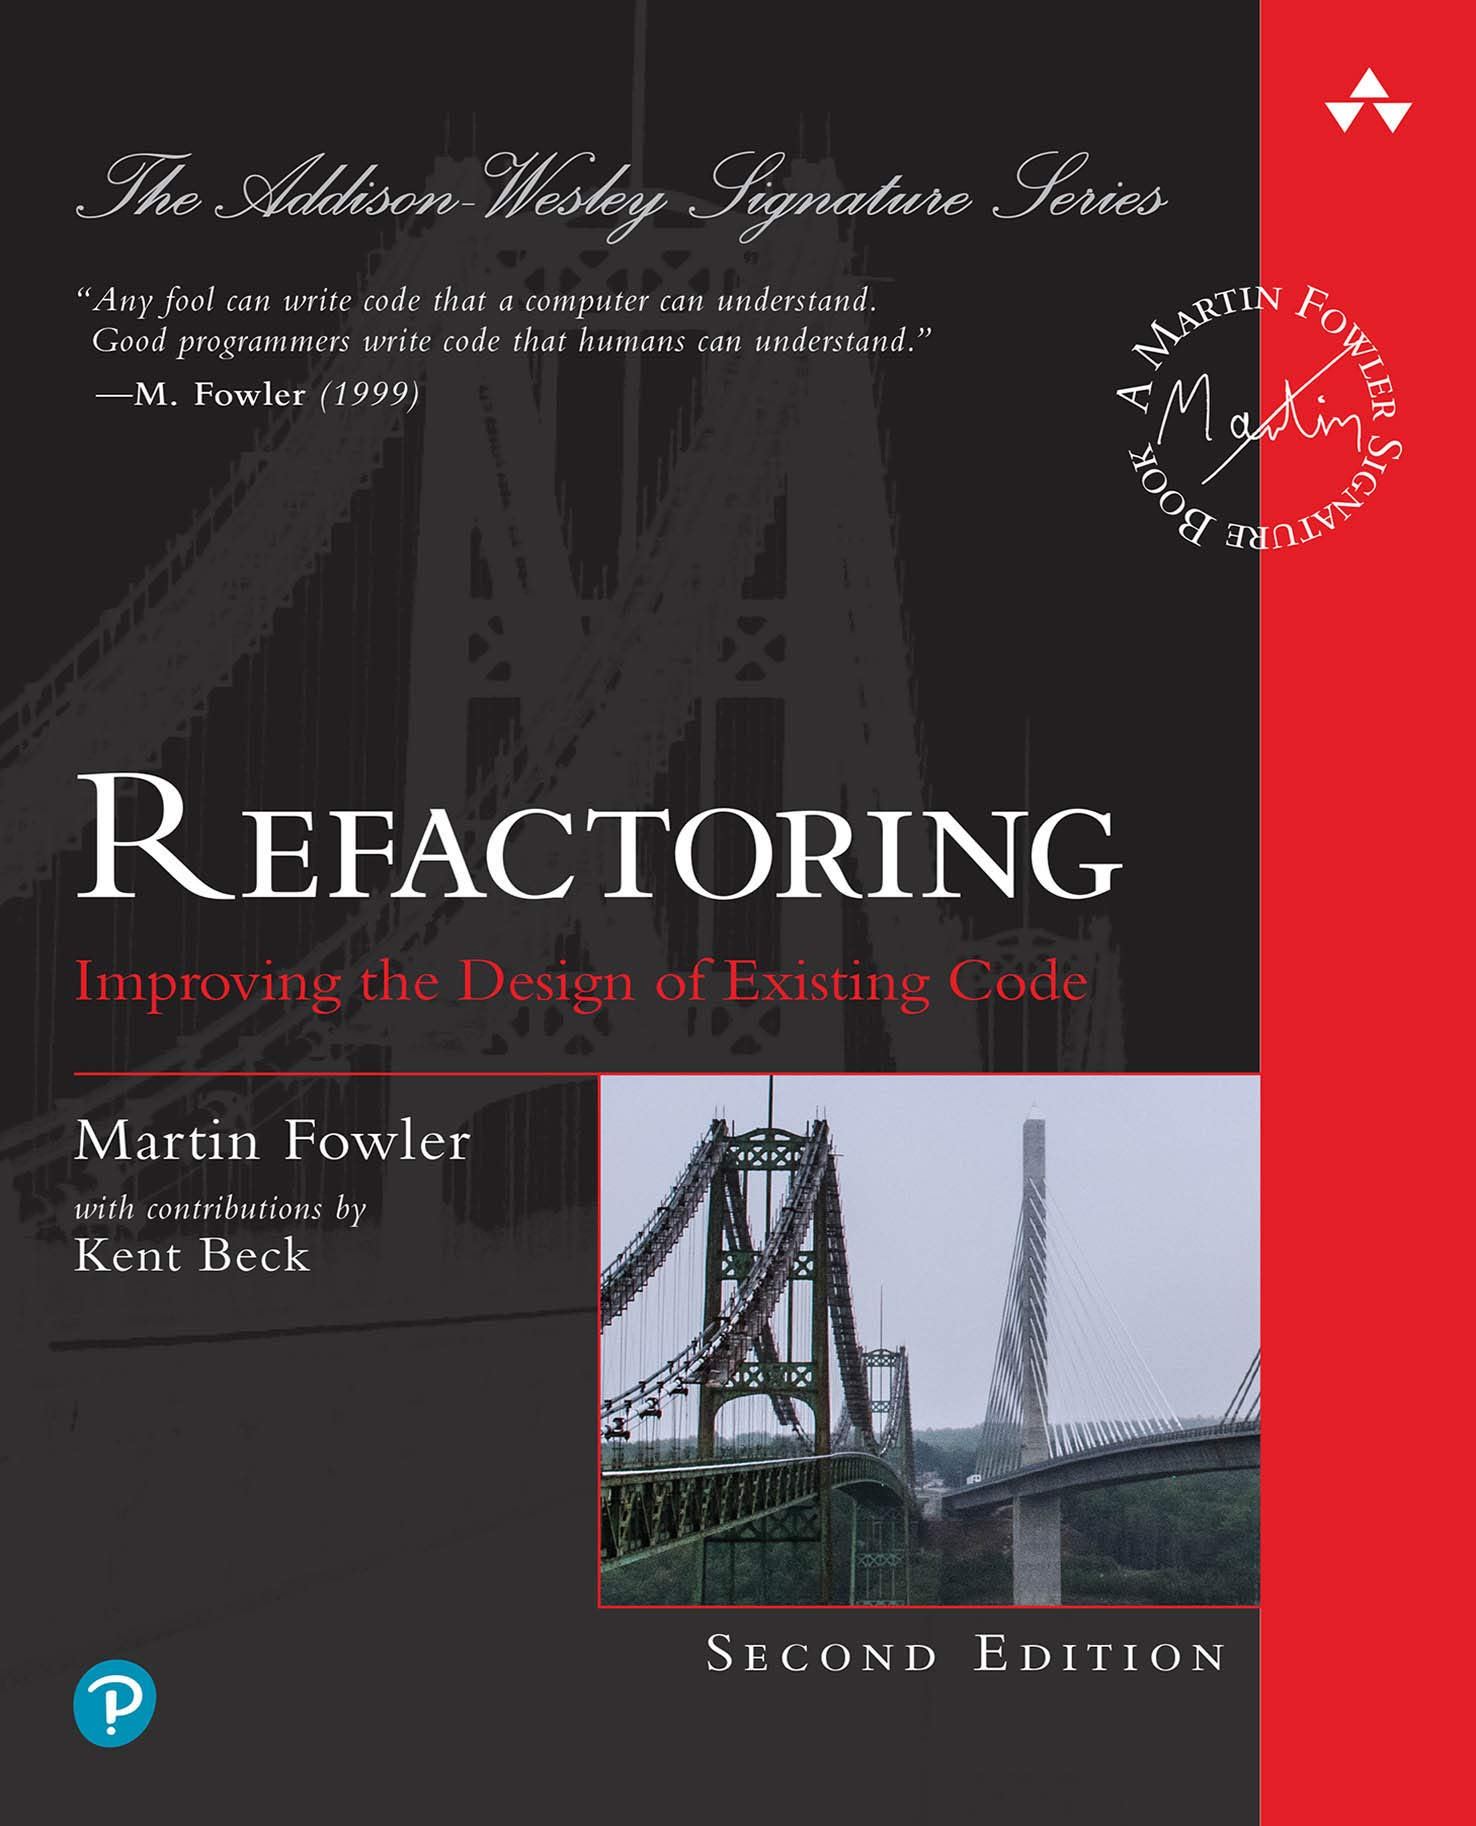 refactoring-book-cover